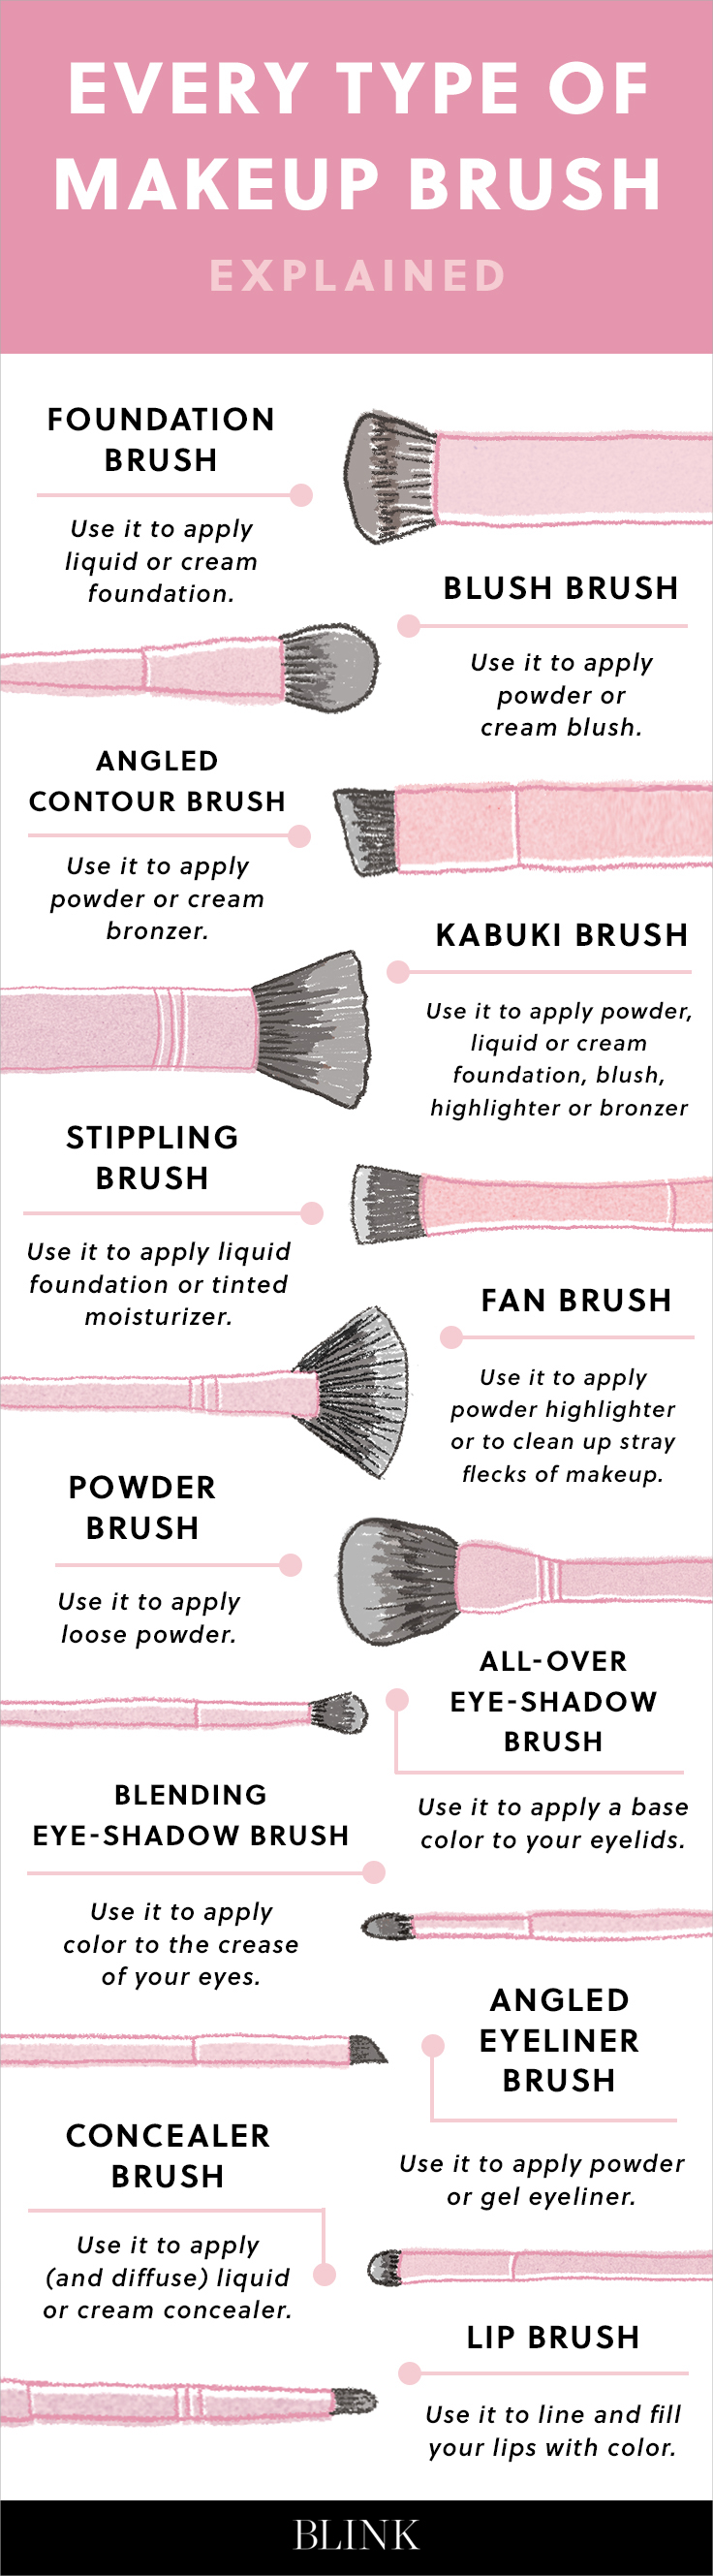 Every Type of Makeup Brush.jpg